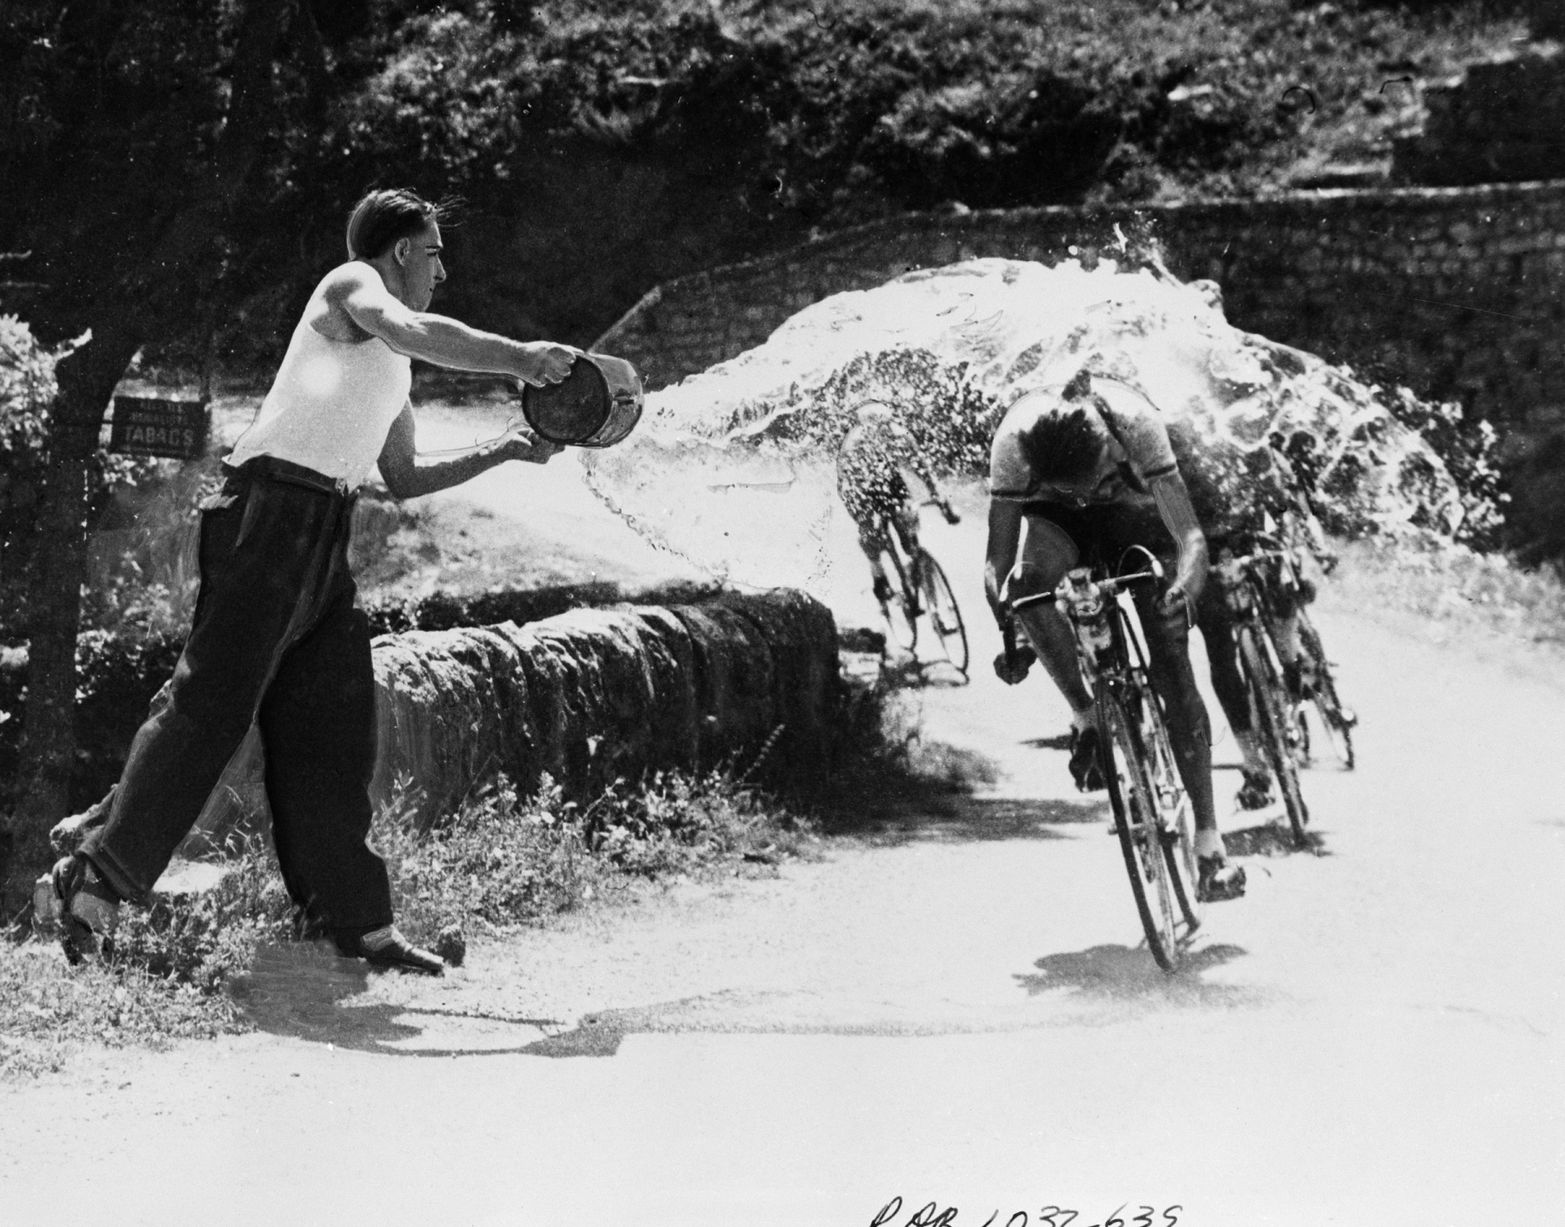 Le Tour de France: Rest Day 2 | Cycling History